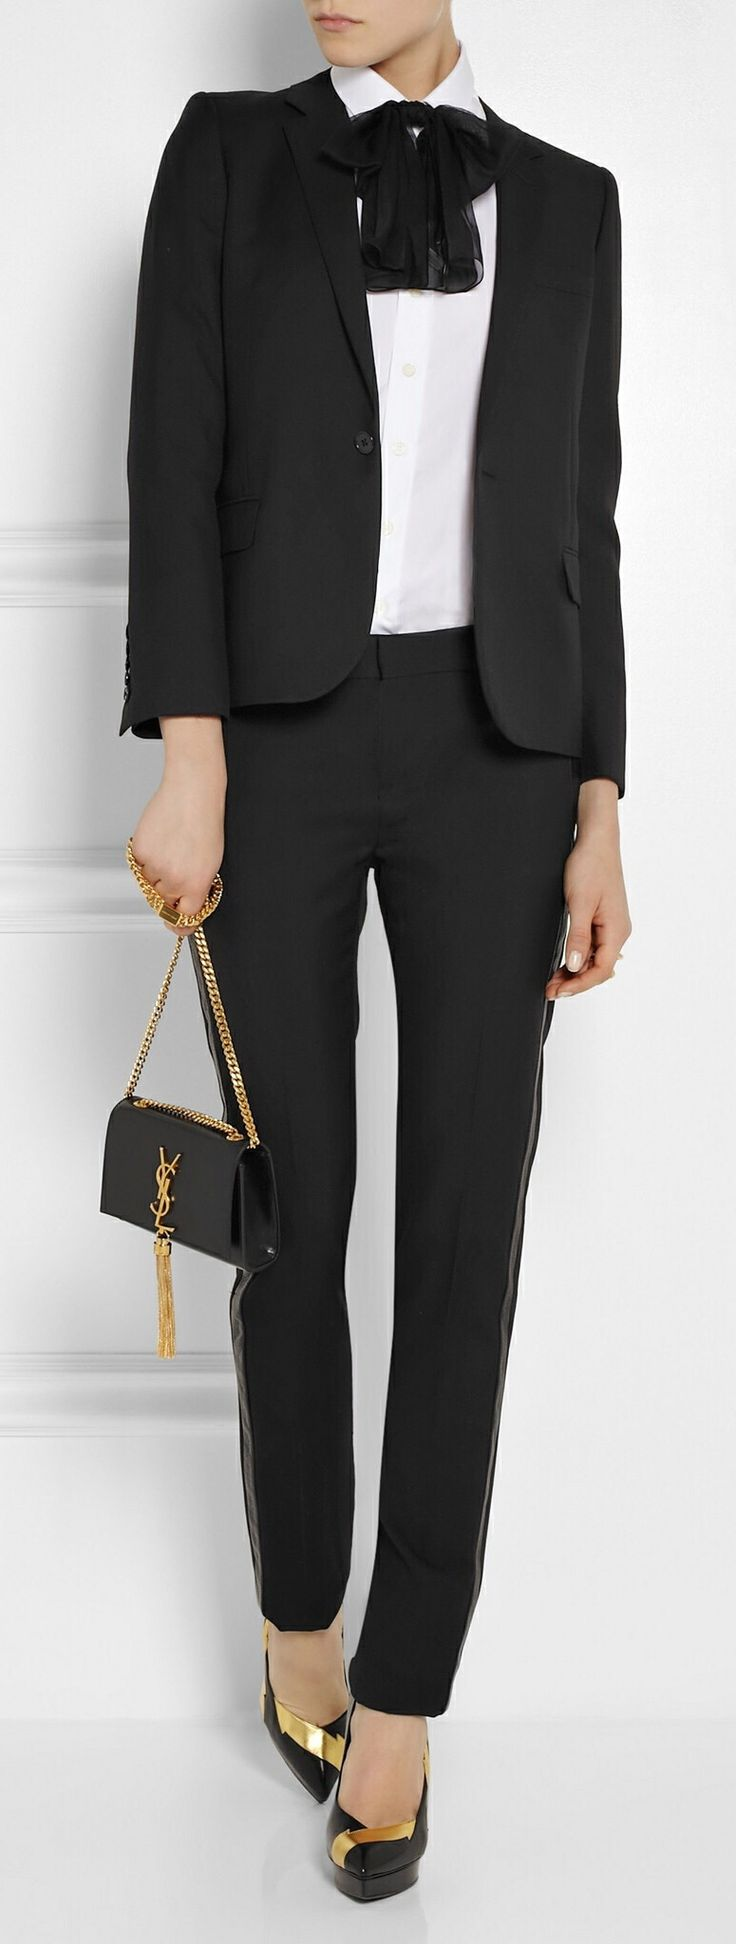 Fall winter office wear business casual blac for Black shirt business casual